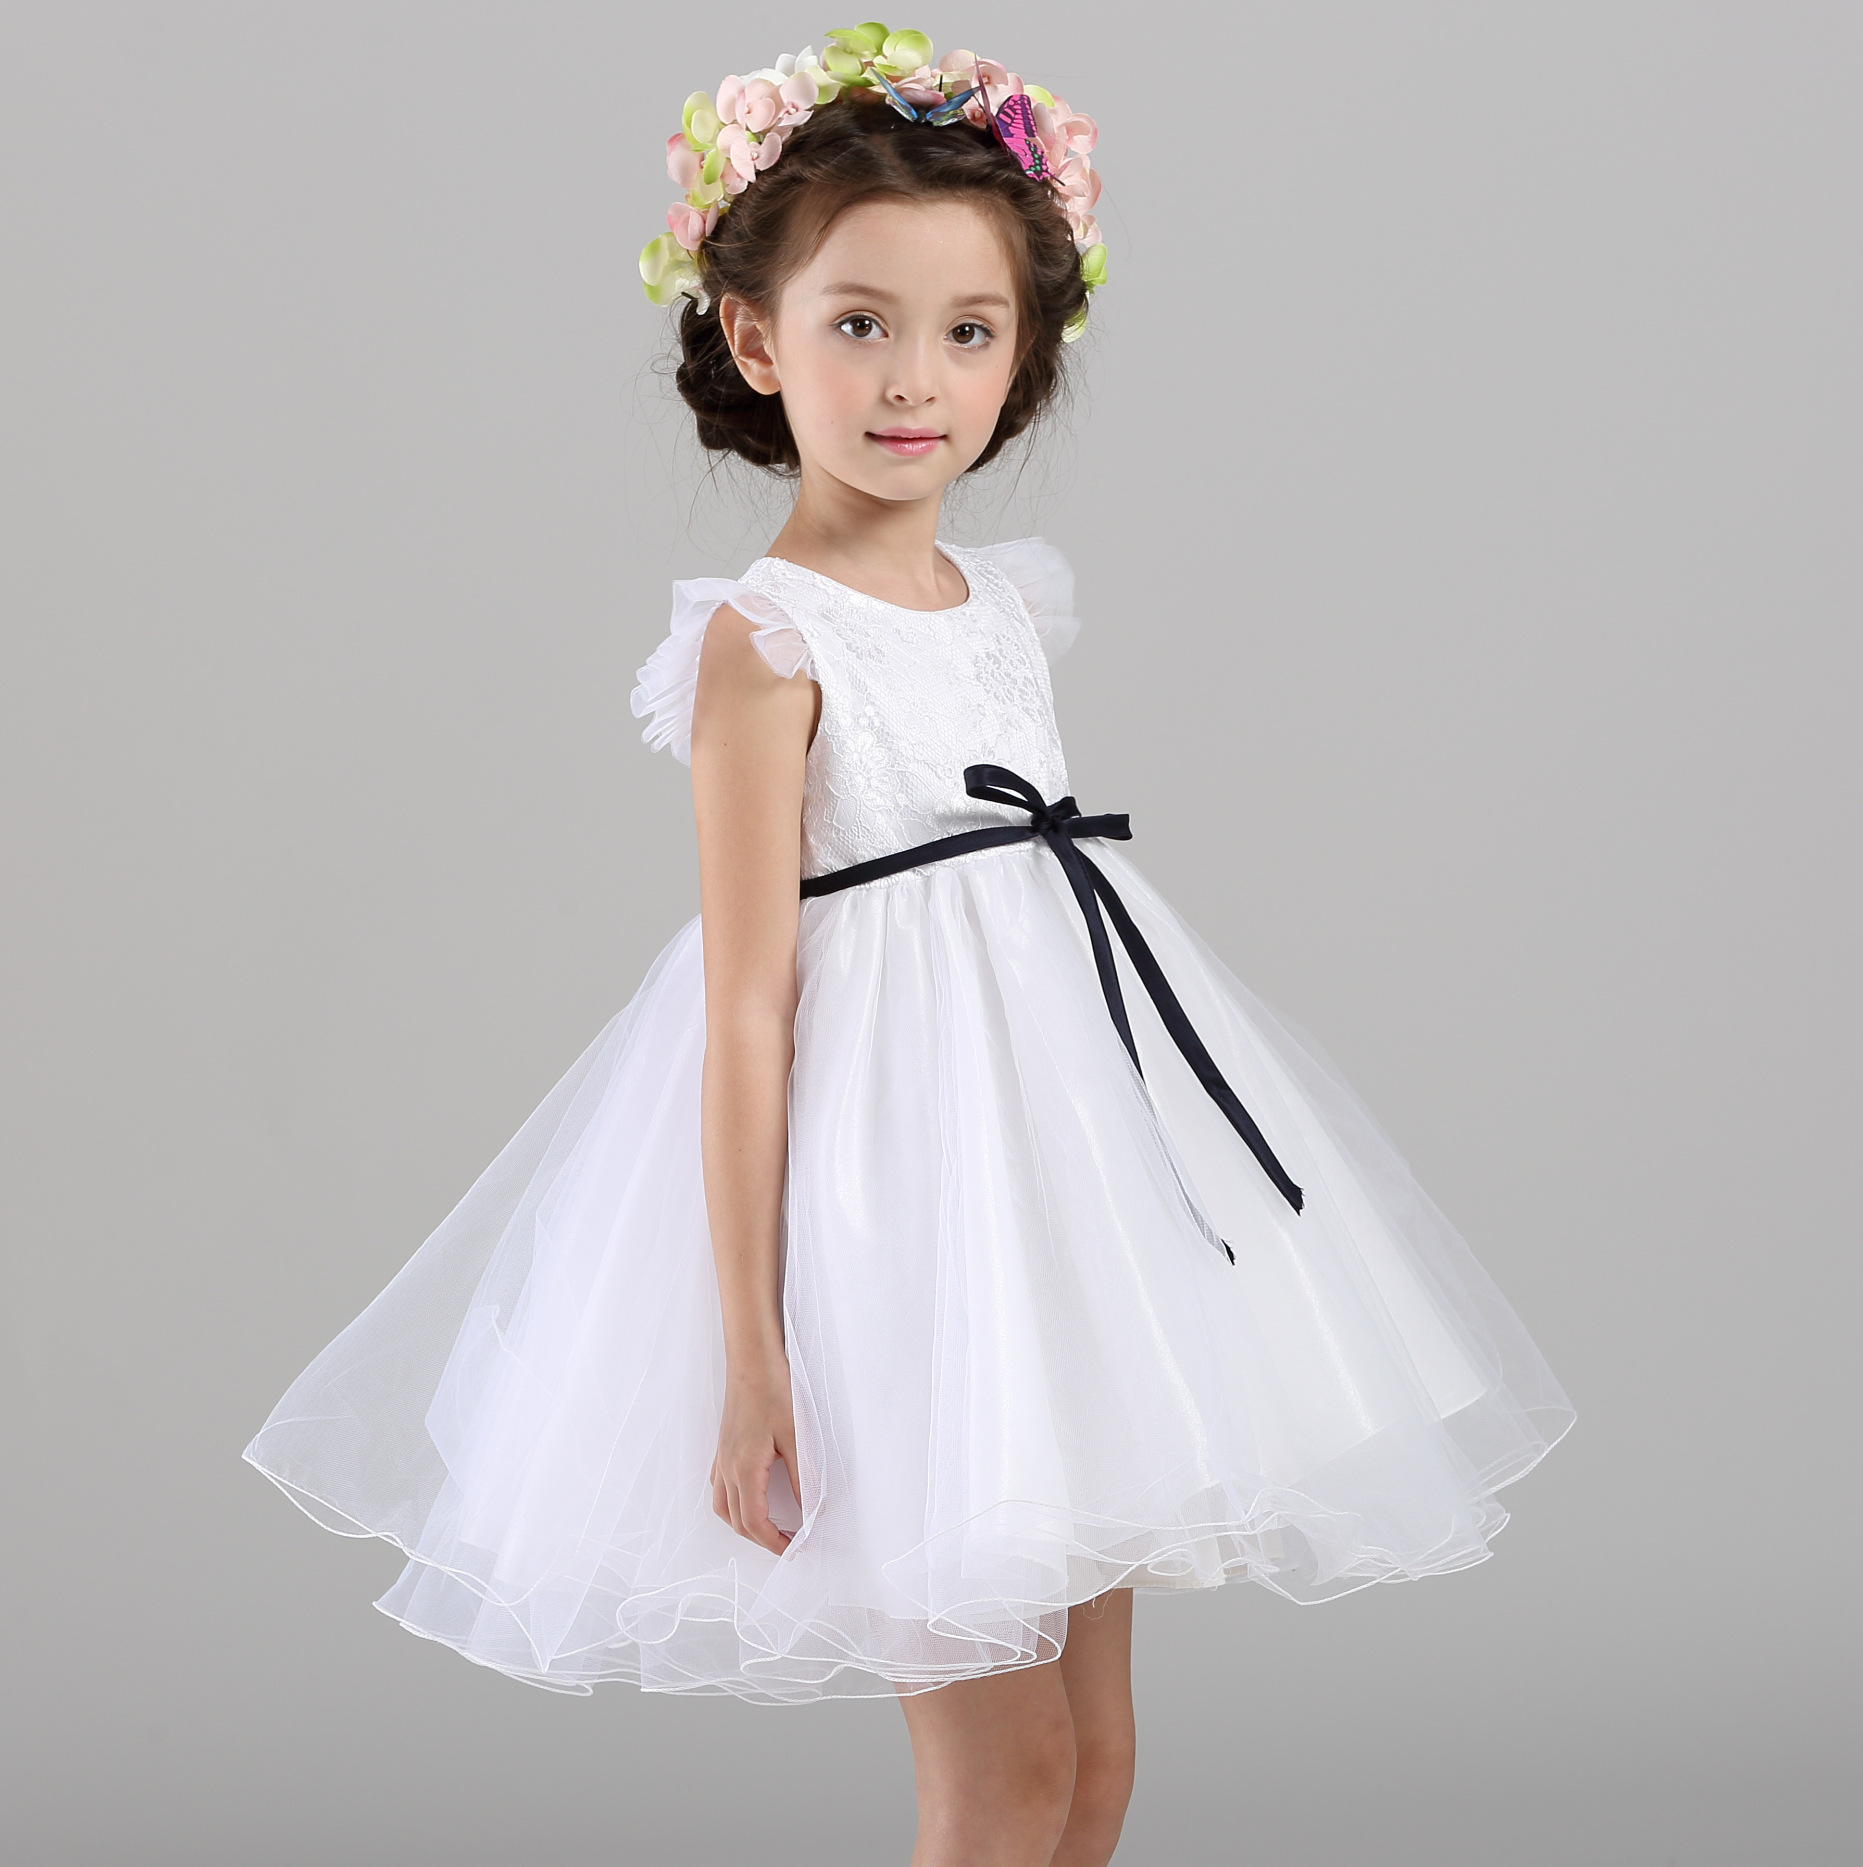 Preschool years, JJ's House has beautiful flower girl dresses that are ideal for any age group and that exquisitely complement the rest of your wedding party. Shop now.